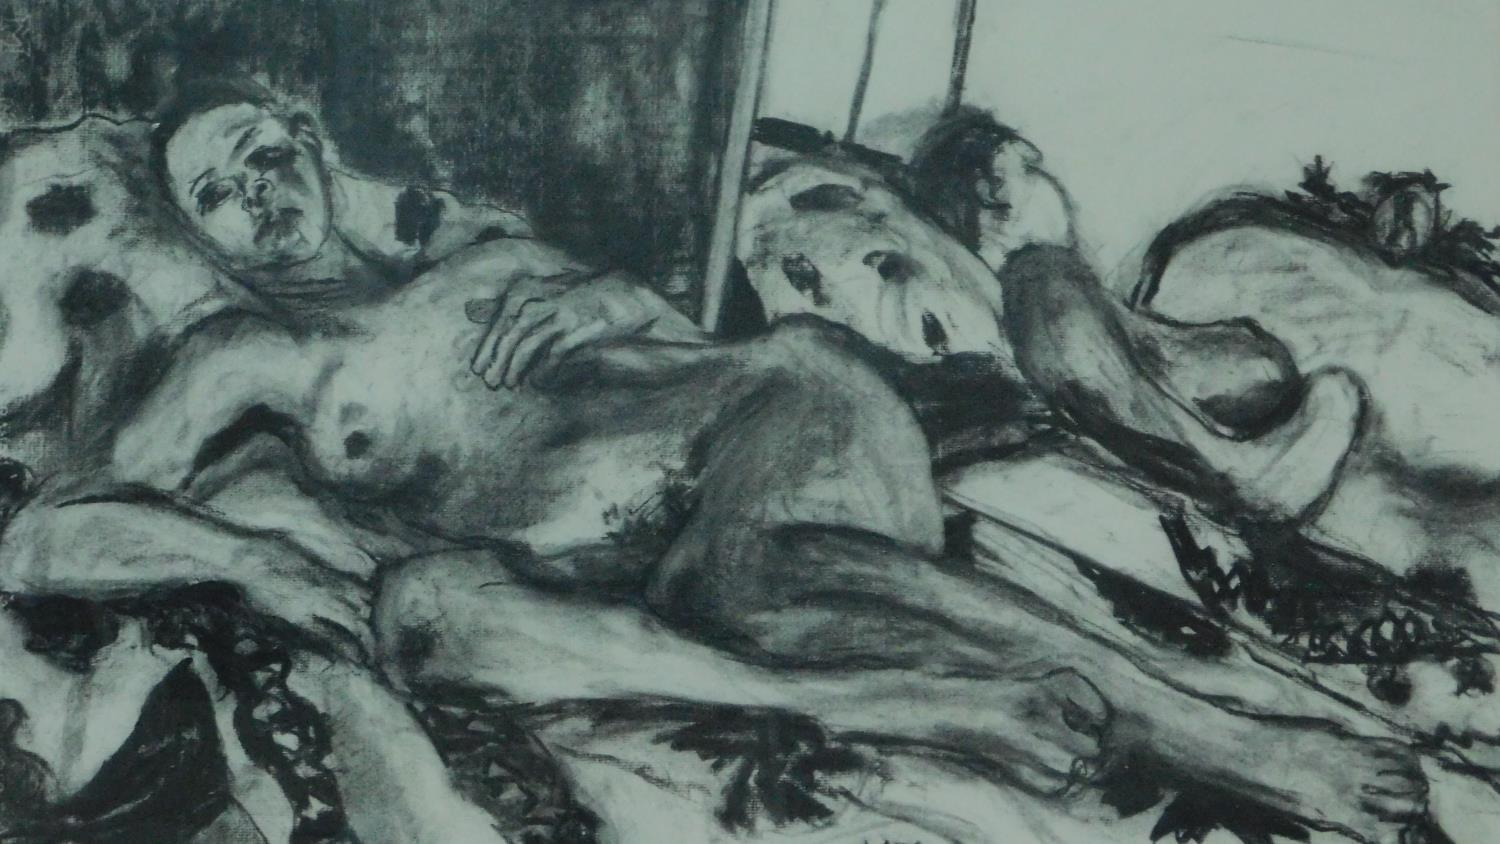 Two framed and glazed charcoal nude studies, monogrammed G H - 78x92 (largest) - Image 2 of 4